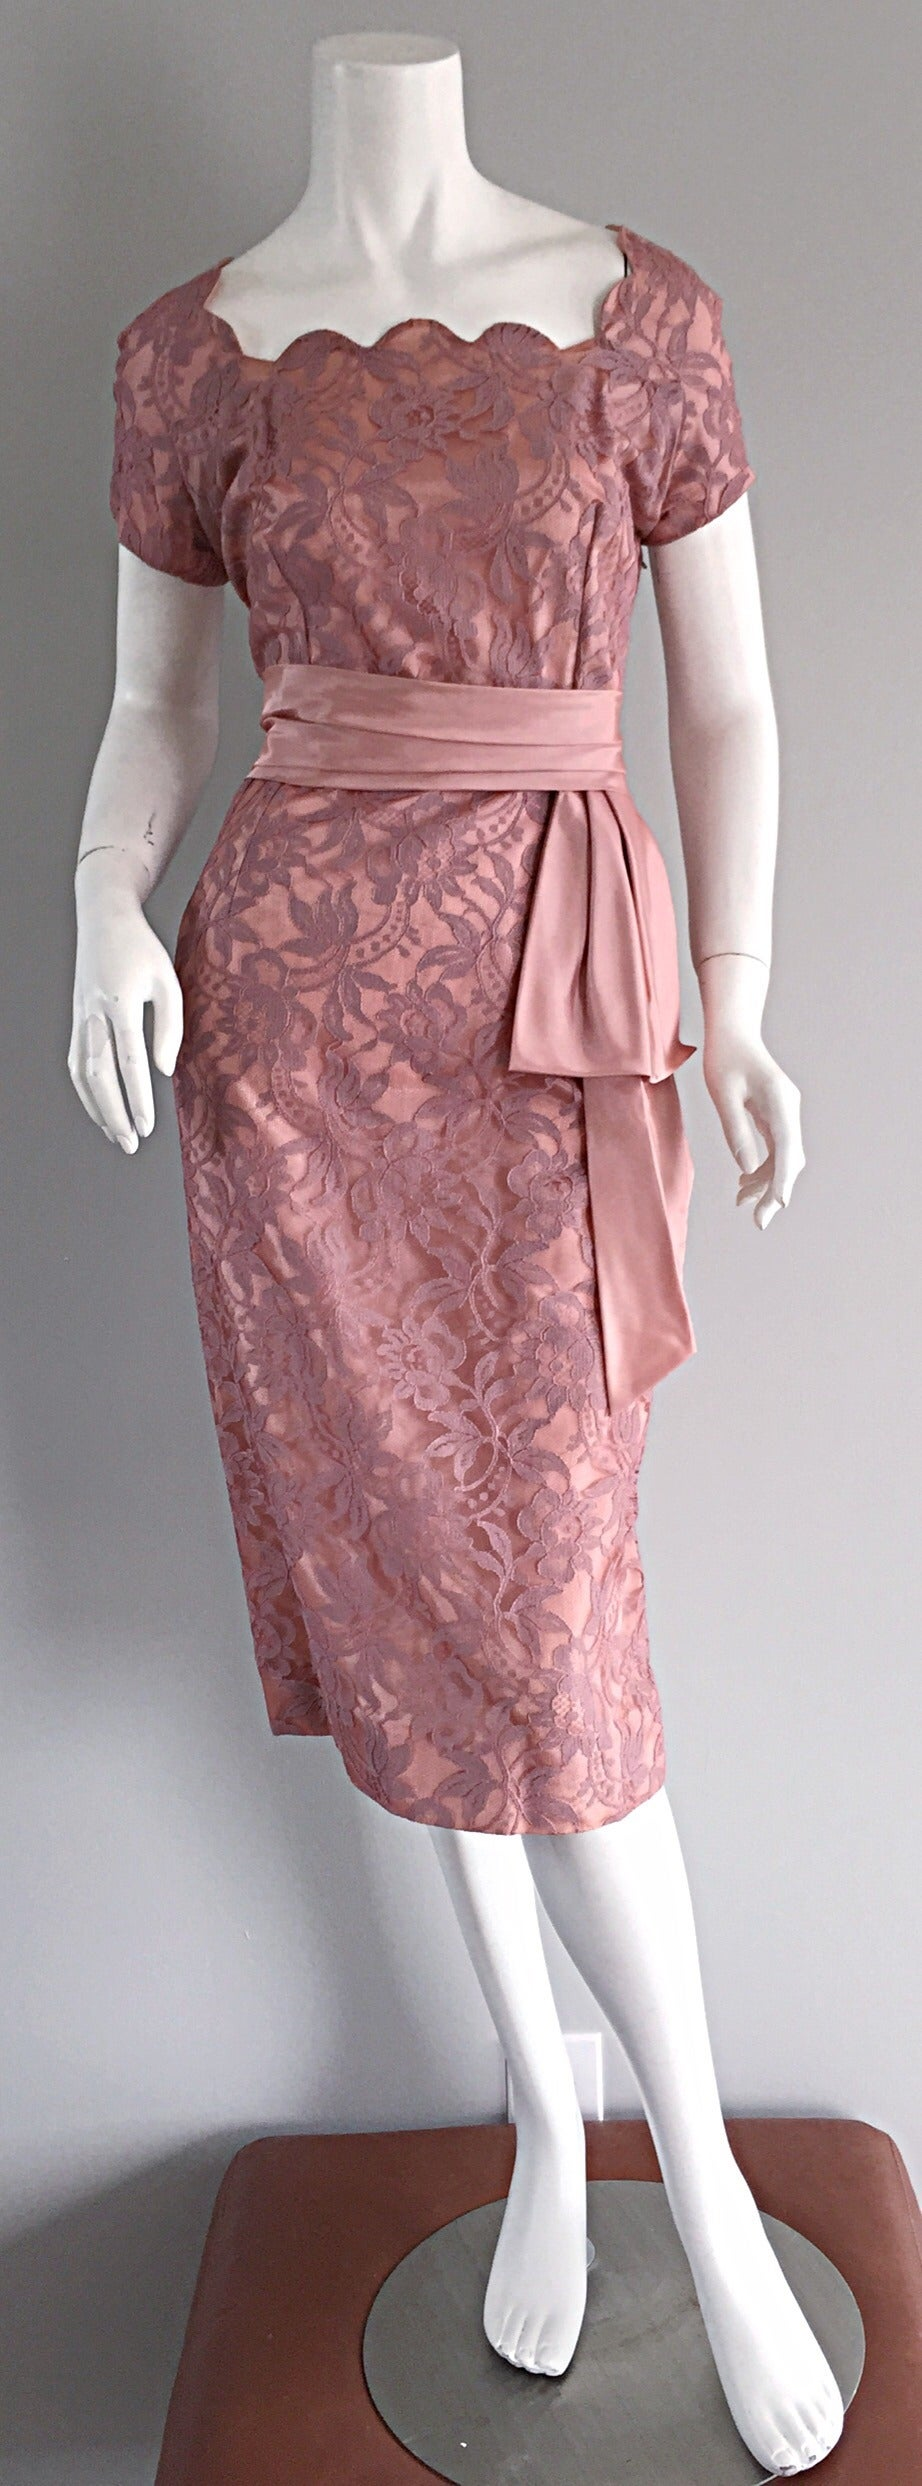 Beautiful Vintage 1950s 50s Pink Lace Wiggle Dress w/ Scalloped Edges 3